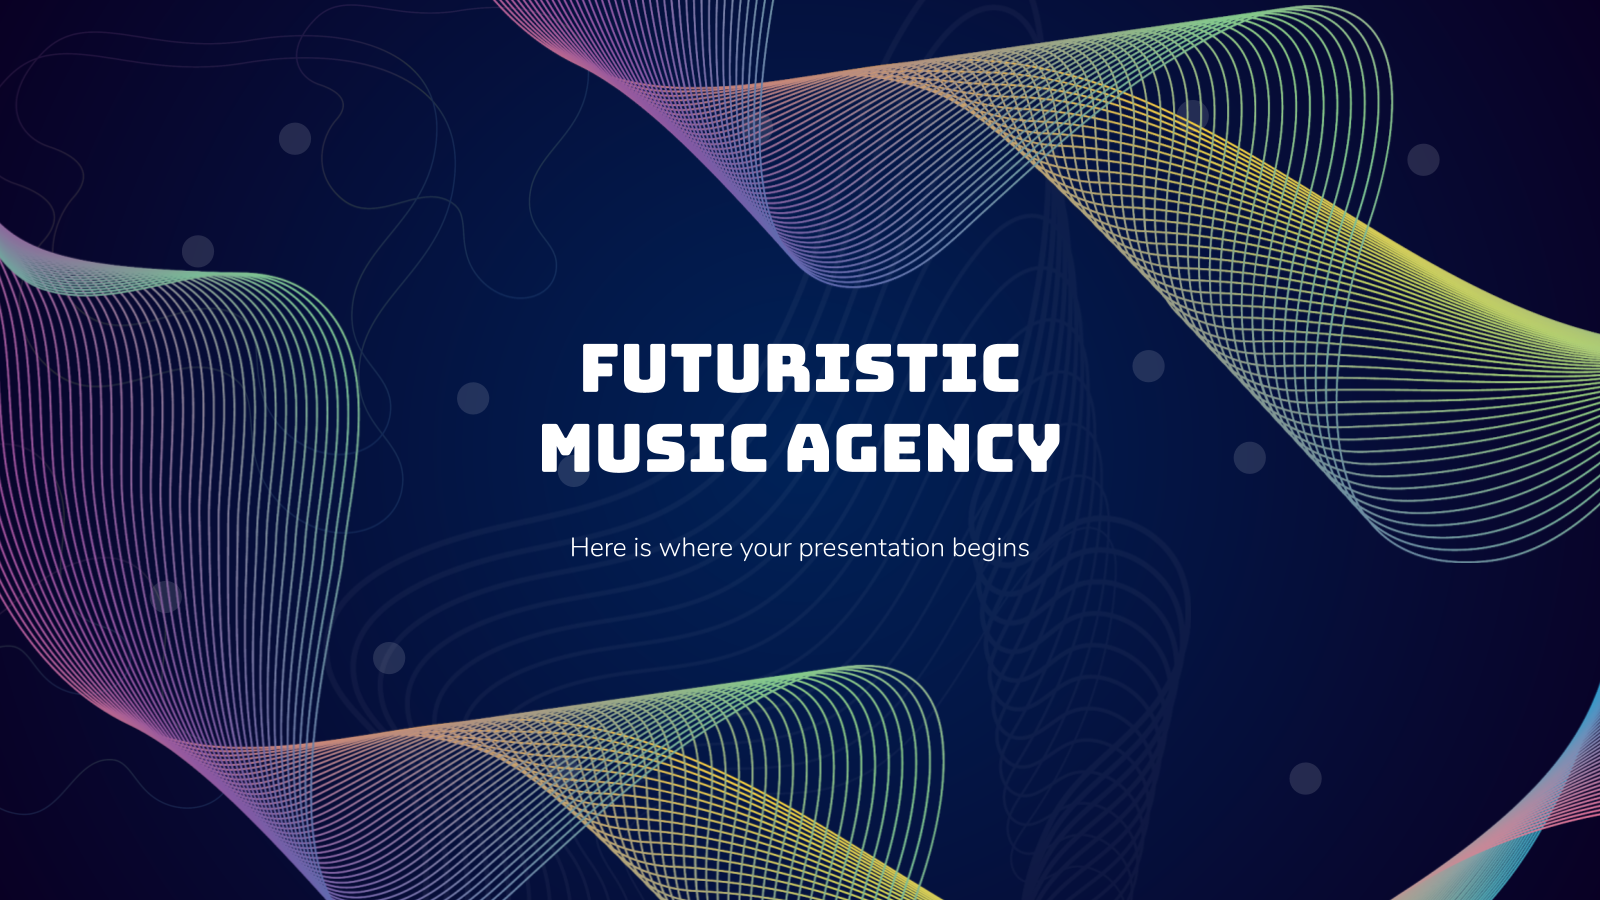 Futuristic Music Agency presentation template